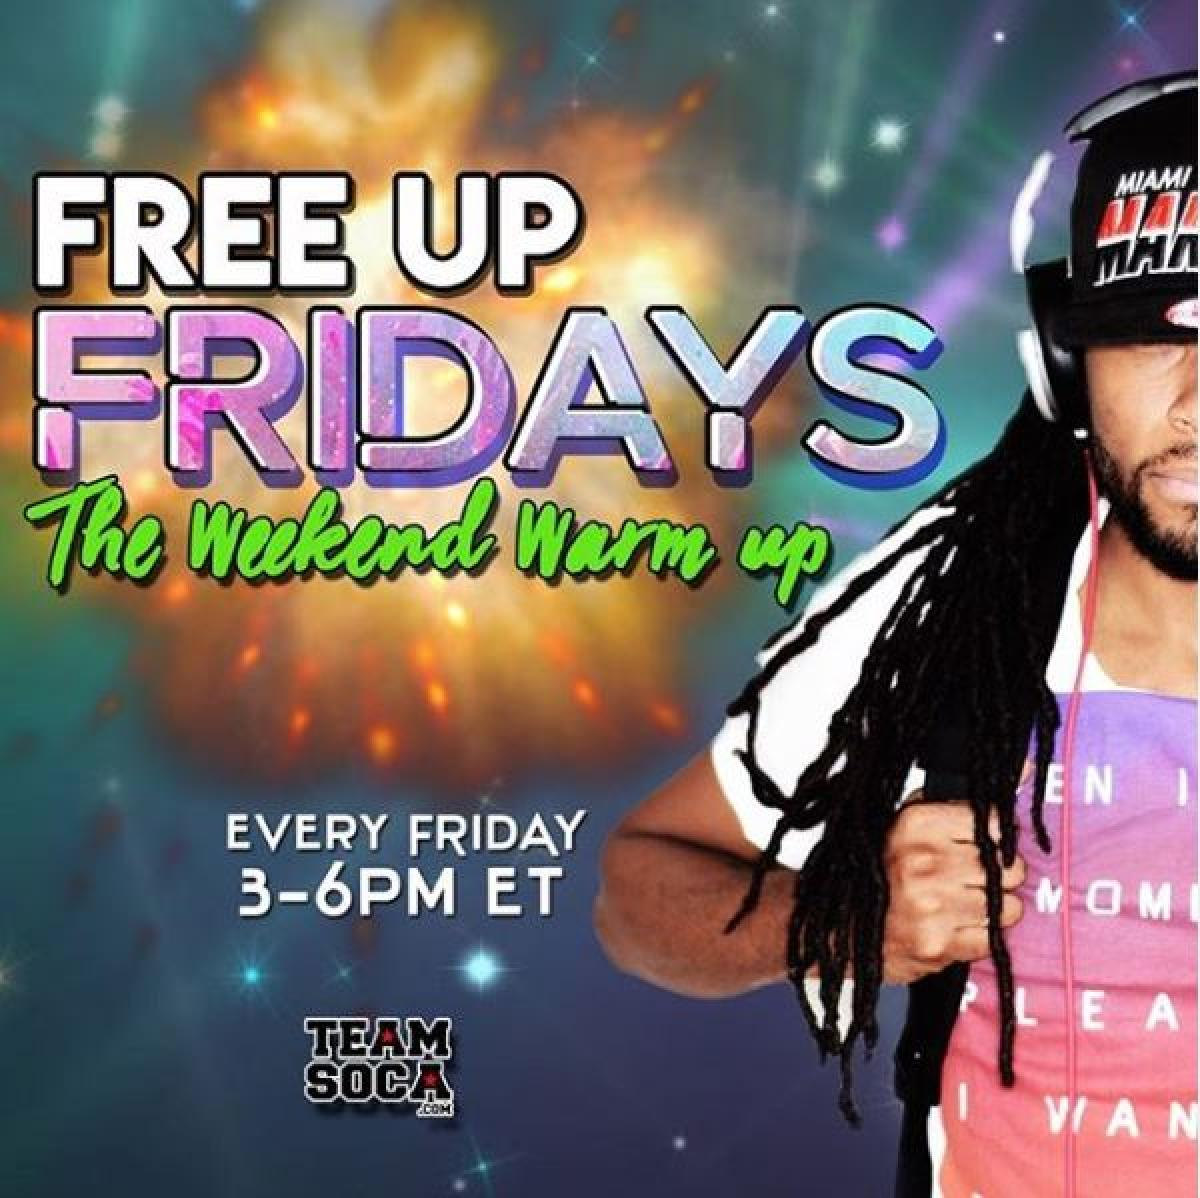 Free Up Fridays  flyer or graphic.